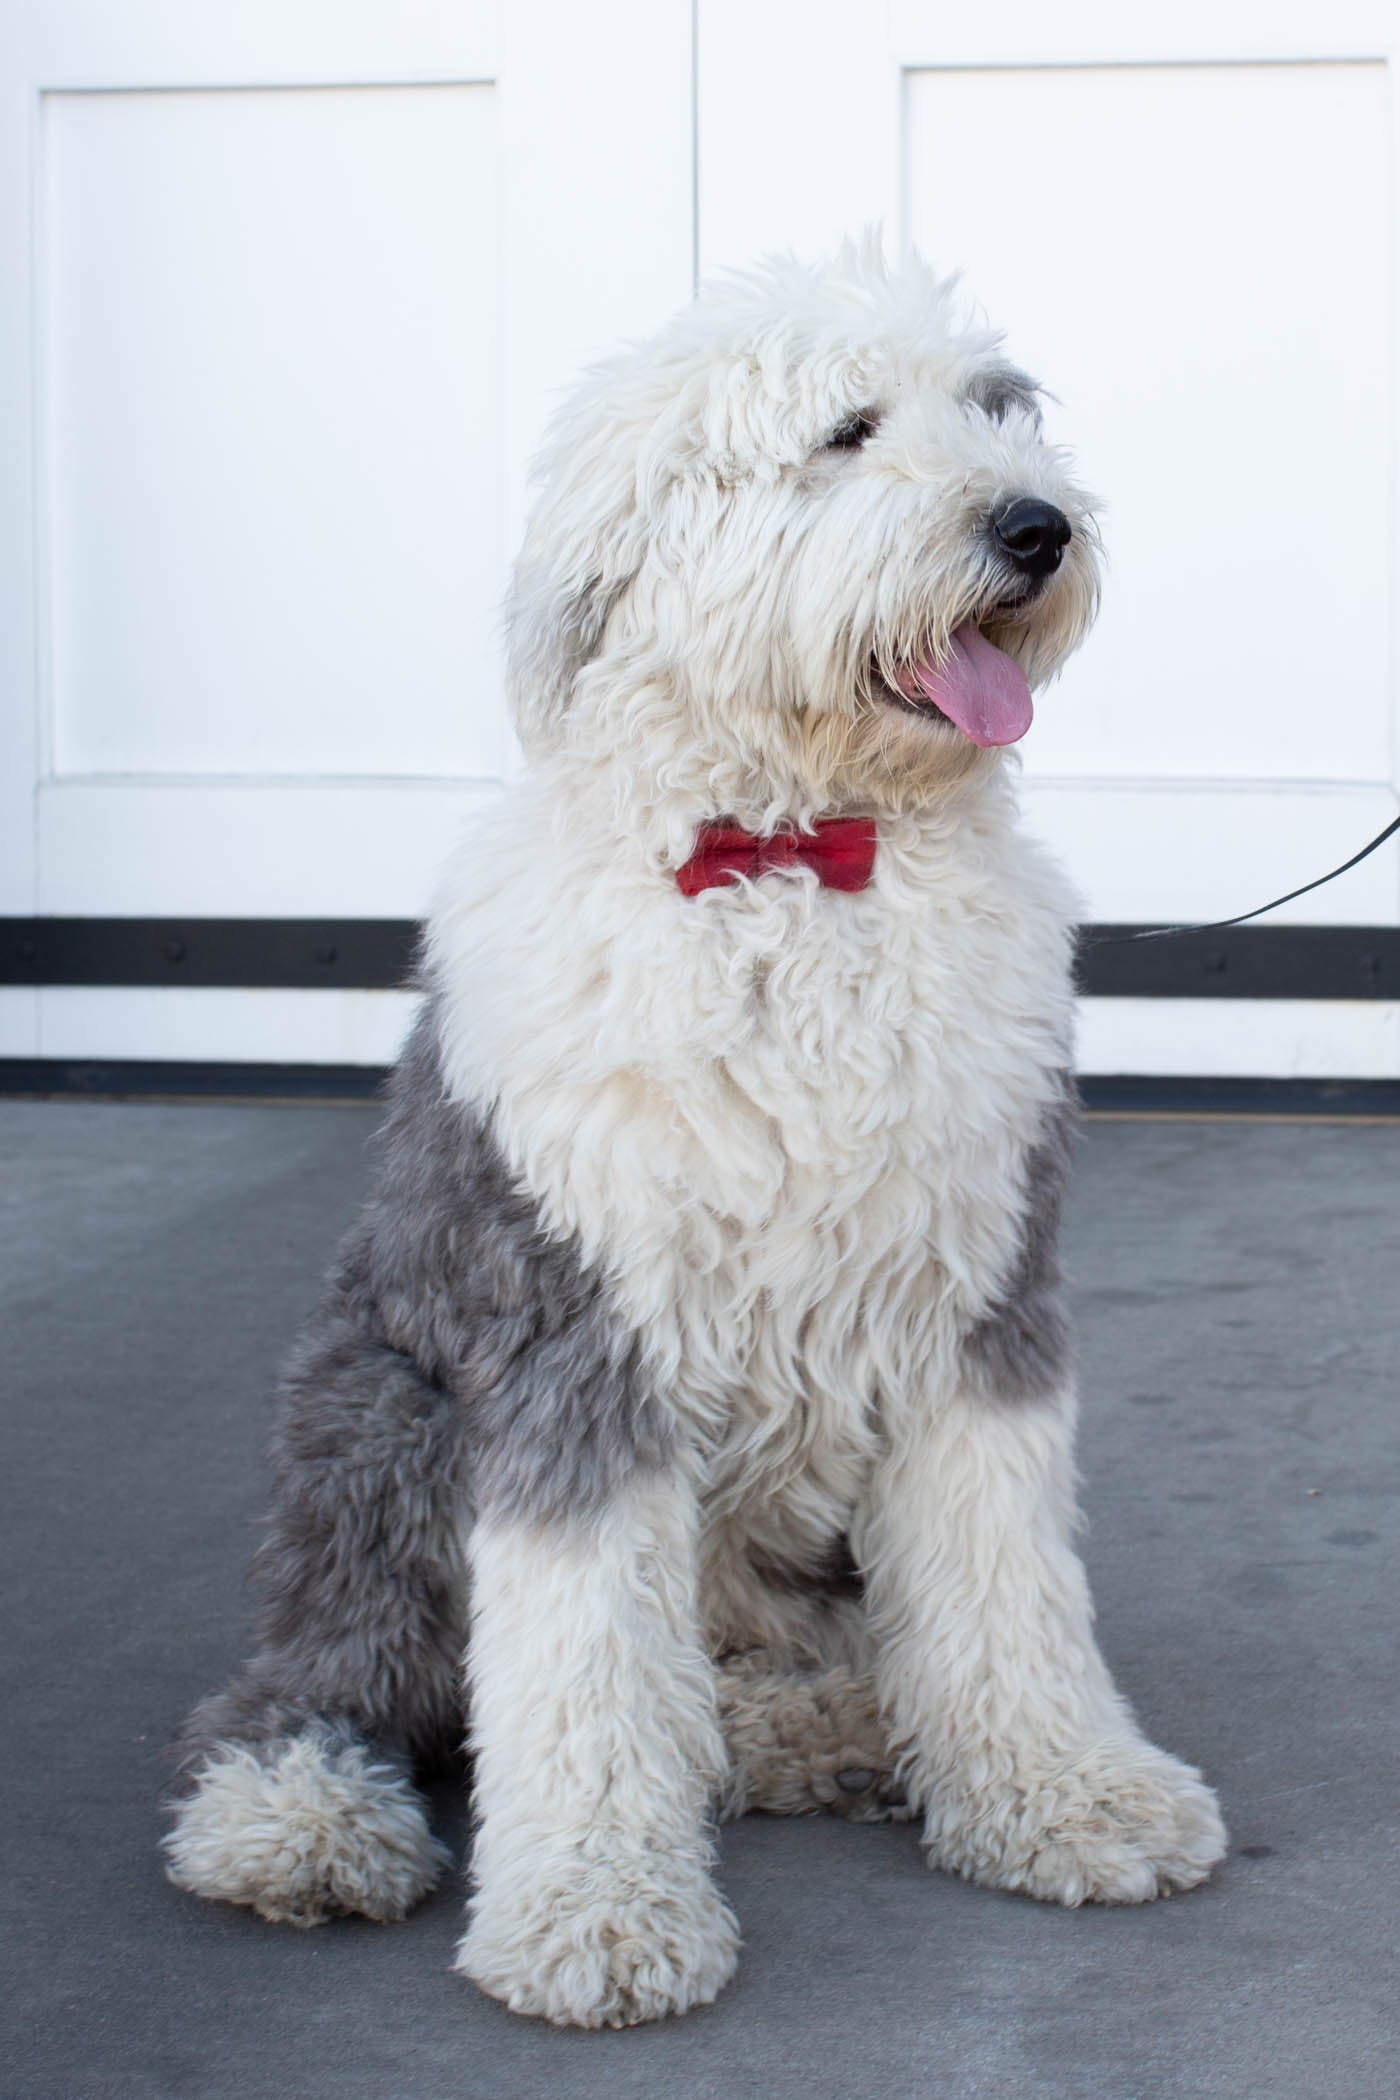 Sheepdog with bow tie